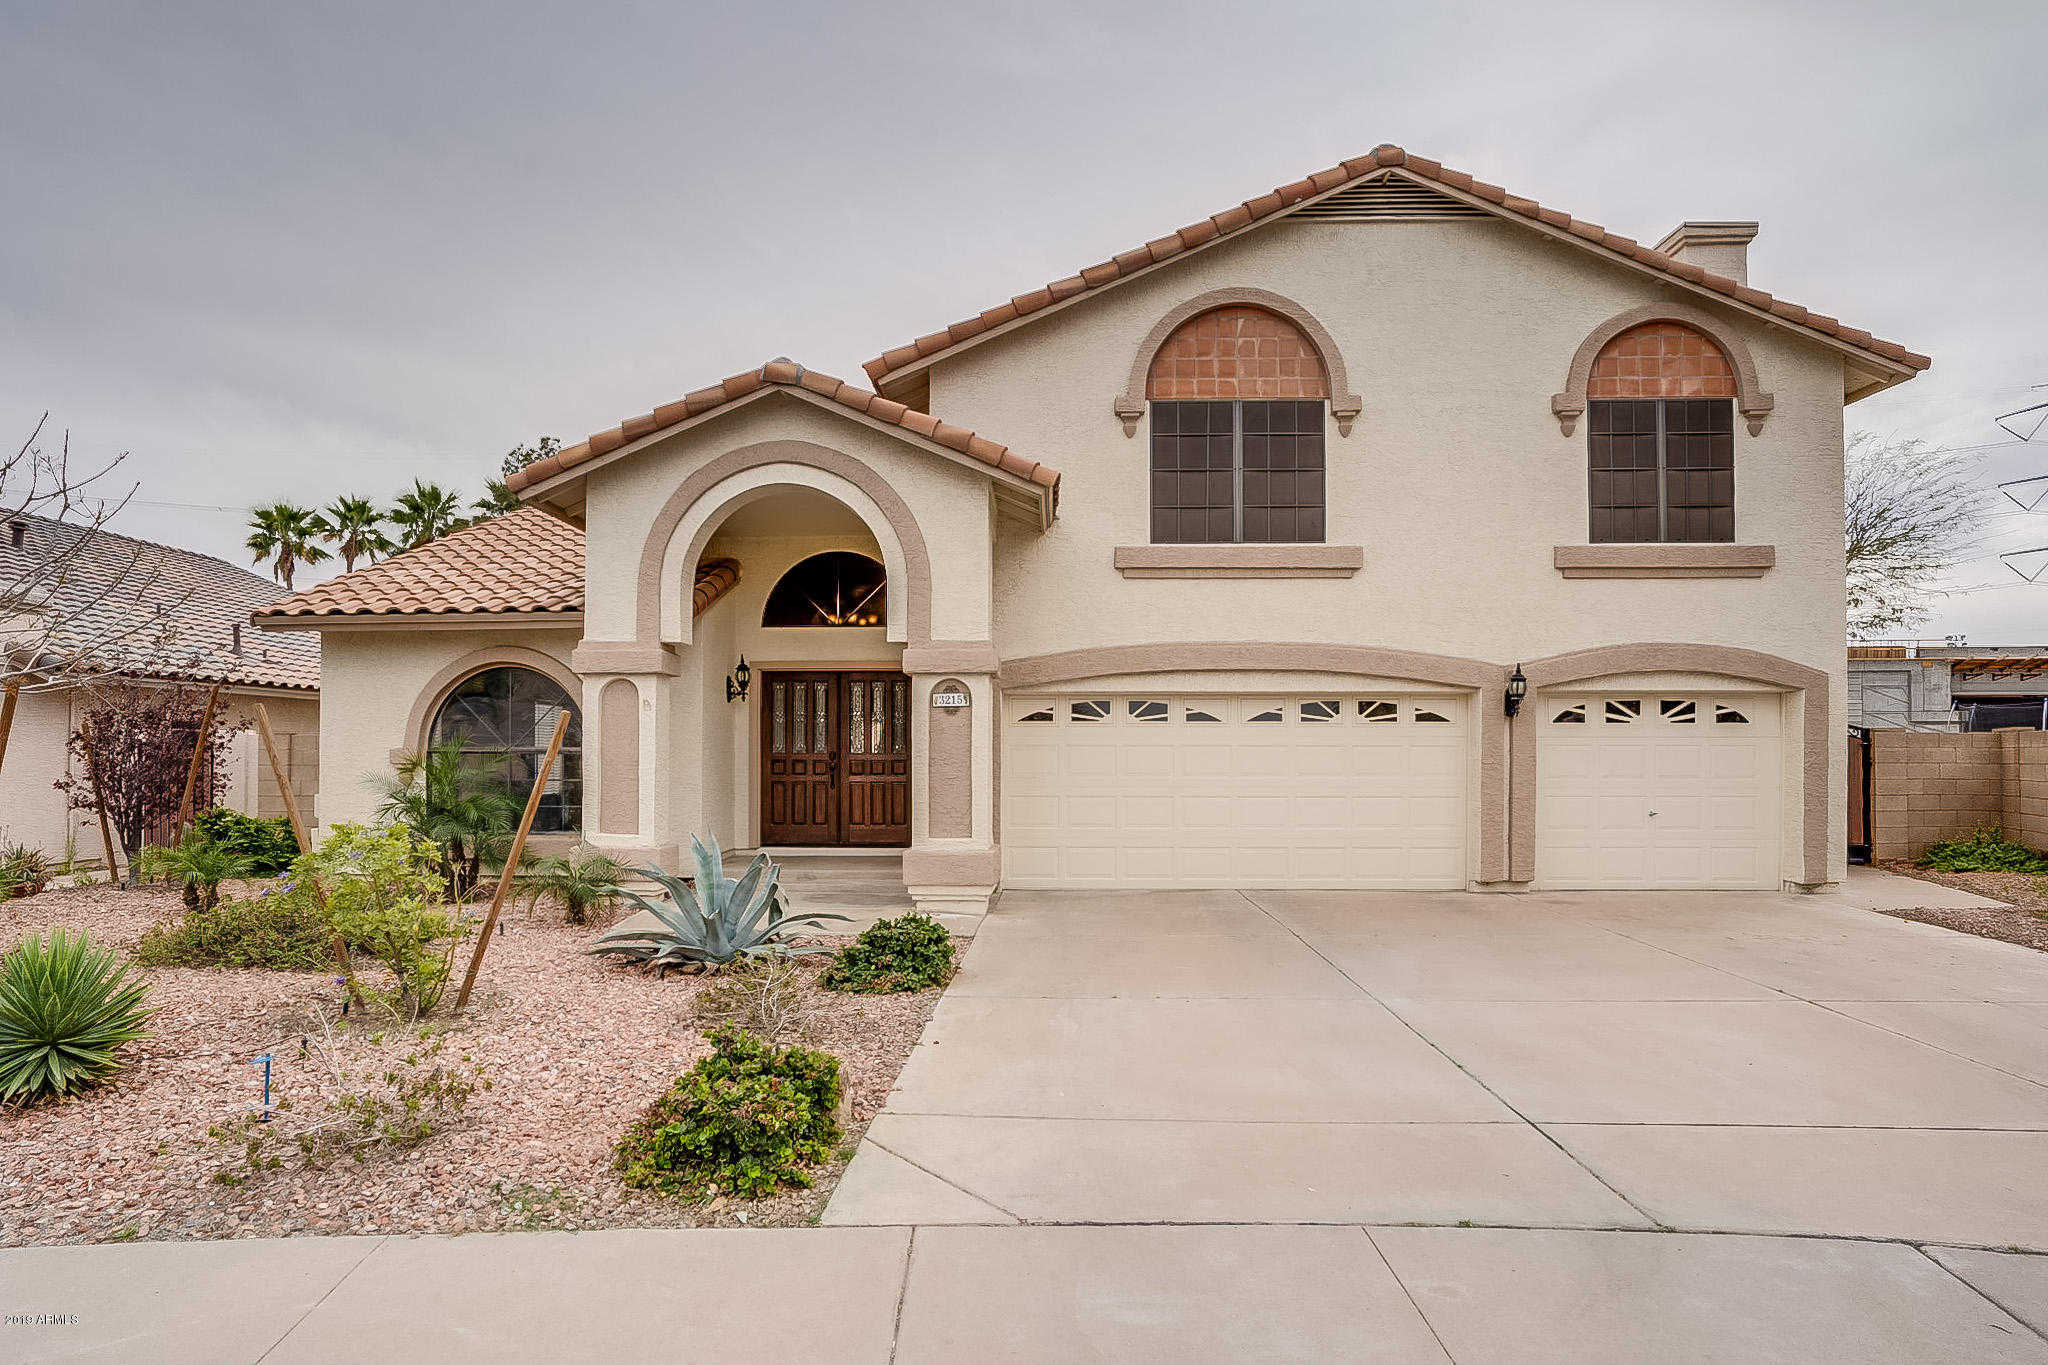 $400,000 - 4Br/3Ba - Home for Sale in Lakewood Parcel 20 Lot 1-114 Tr A&b, Phoenix